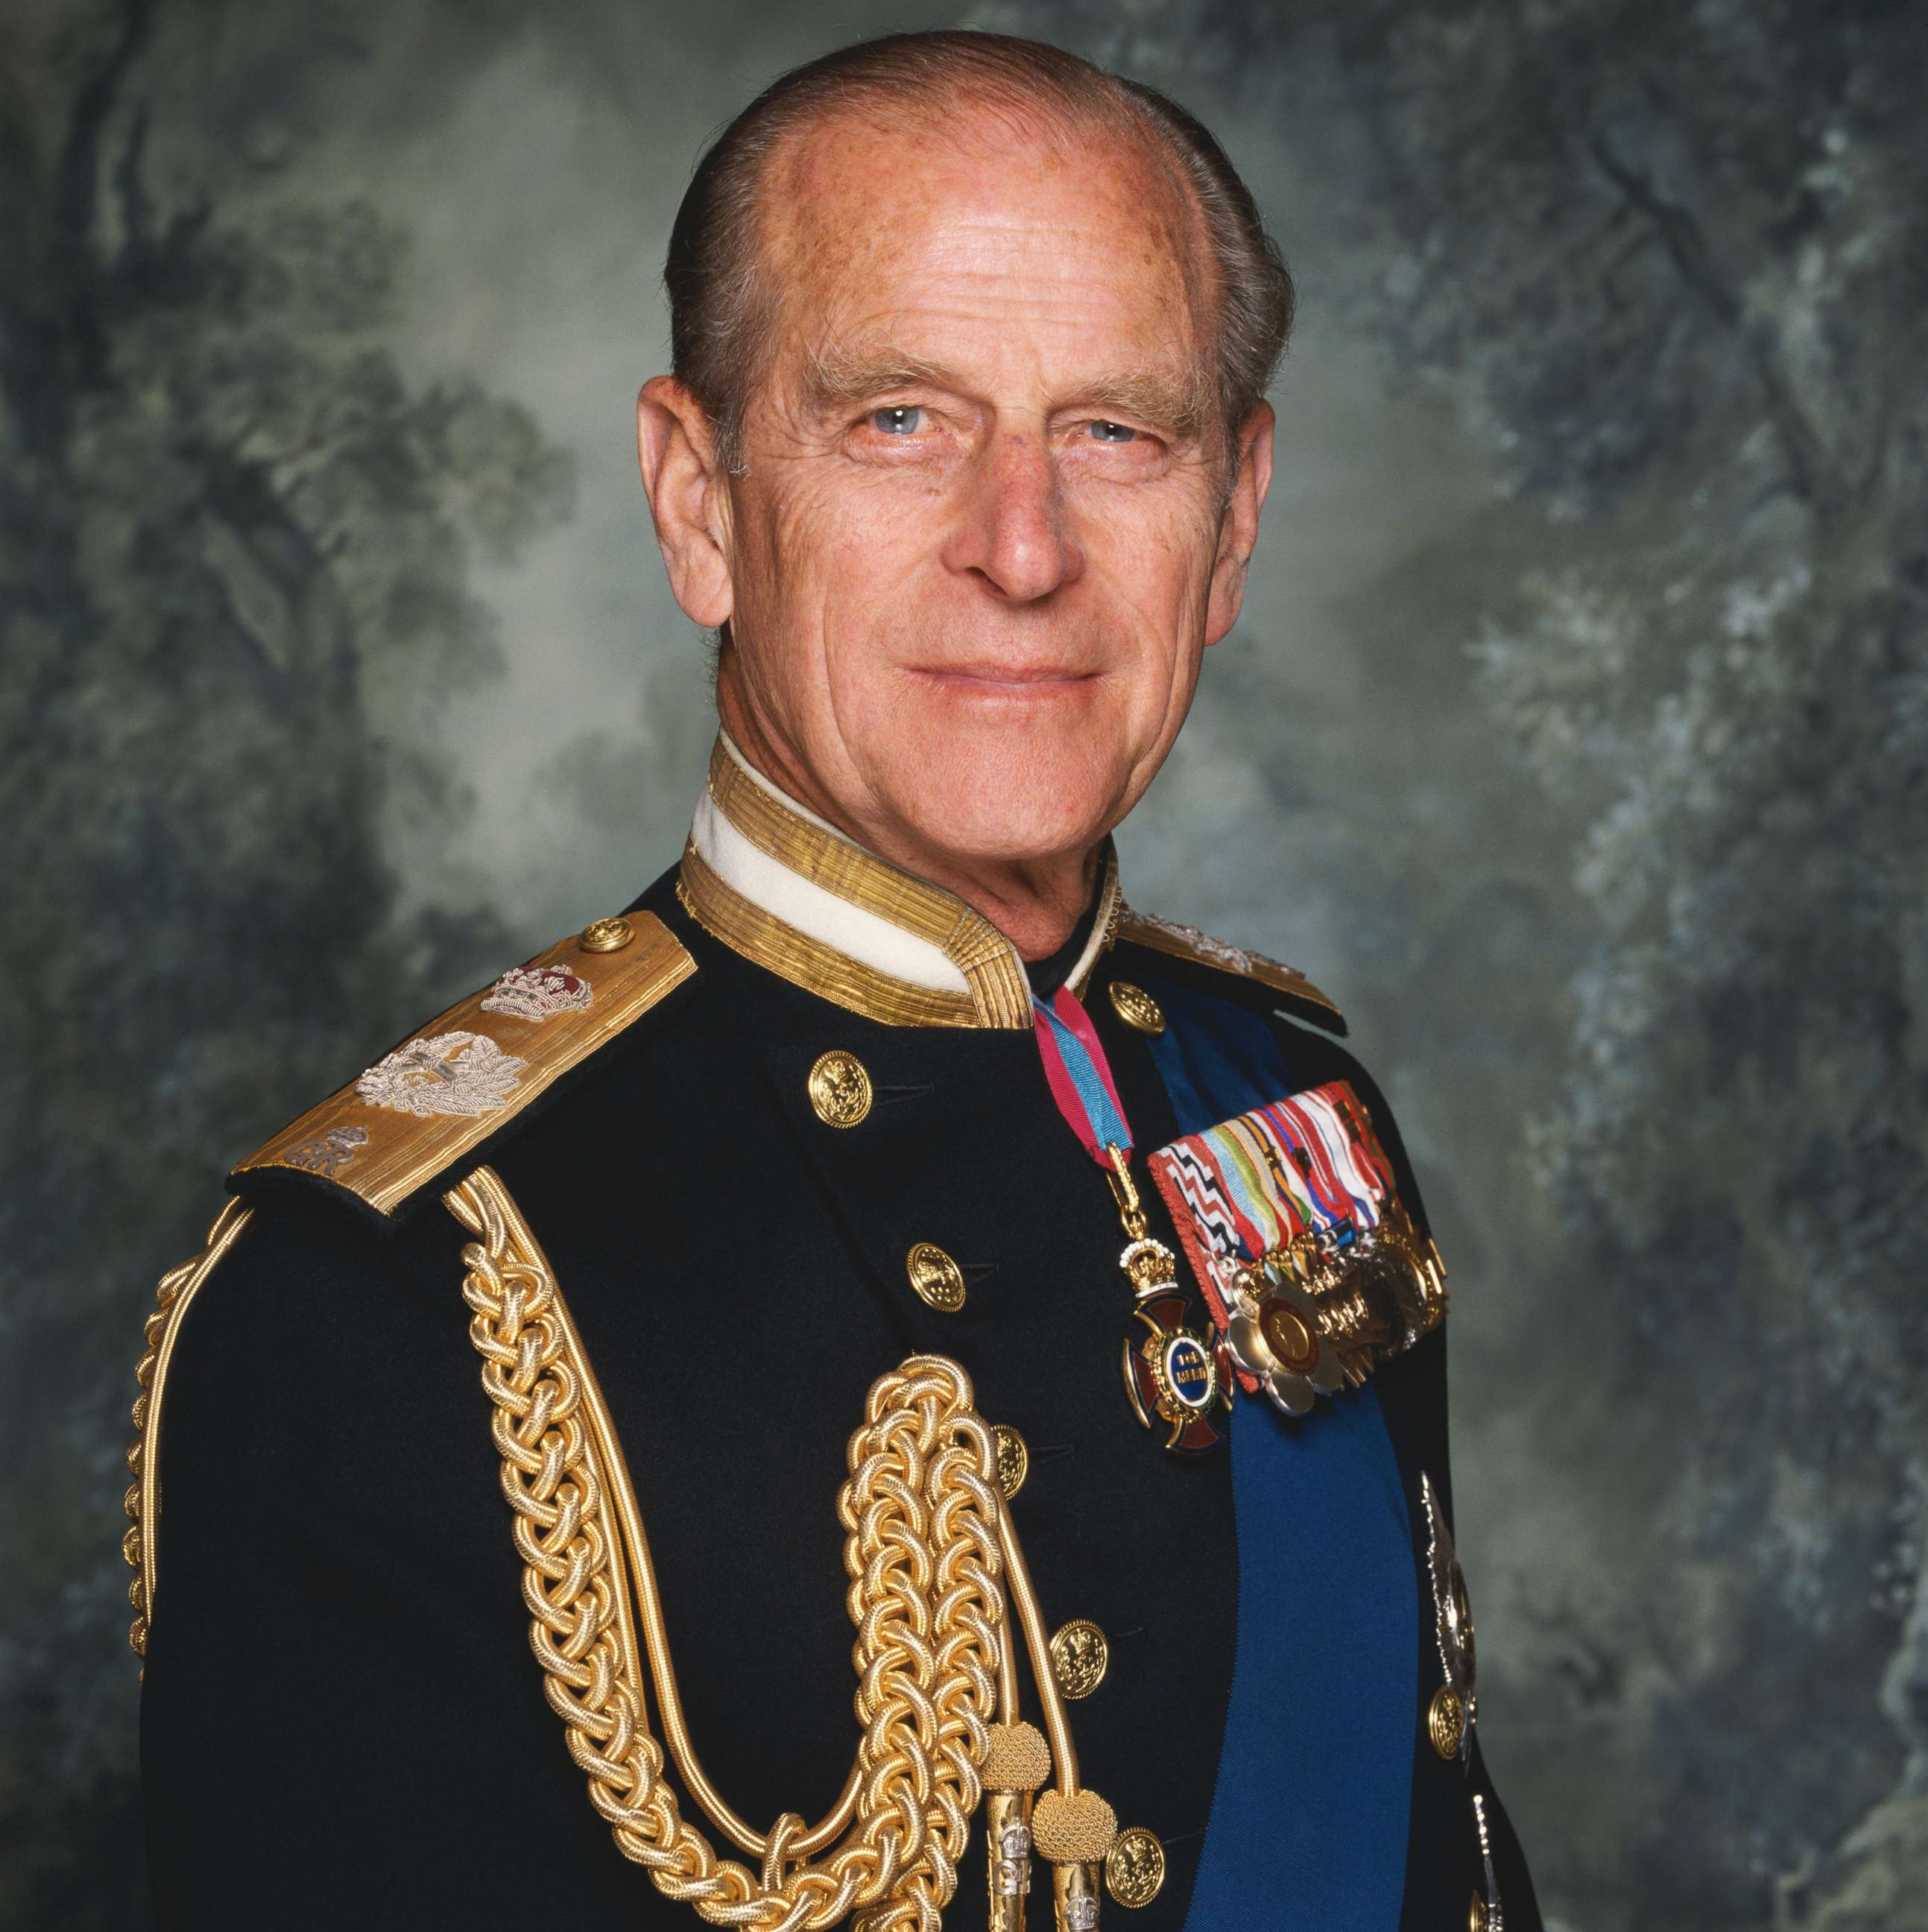 prince philip - photo #40